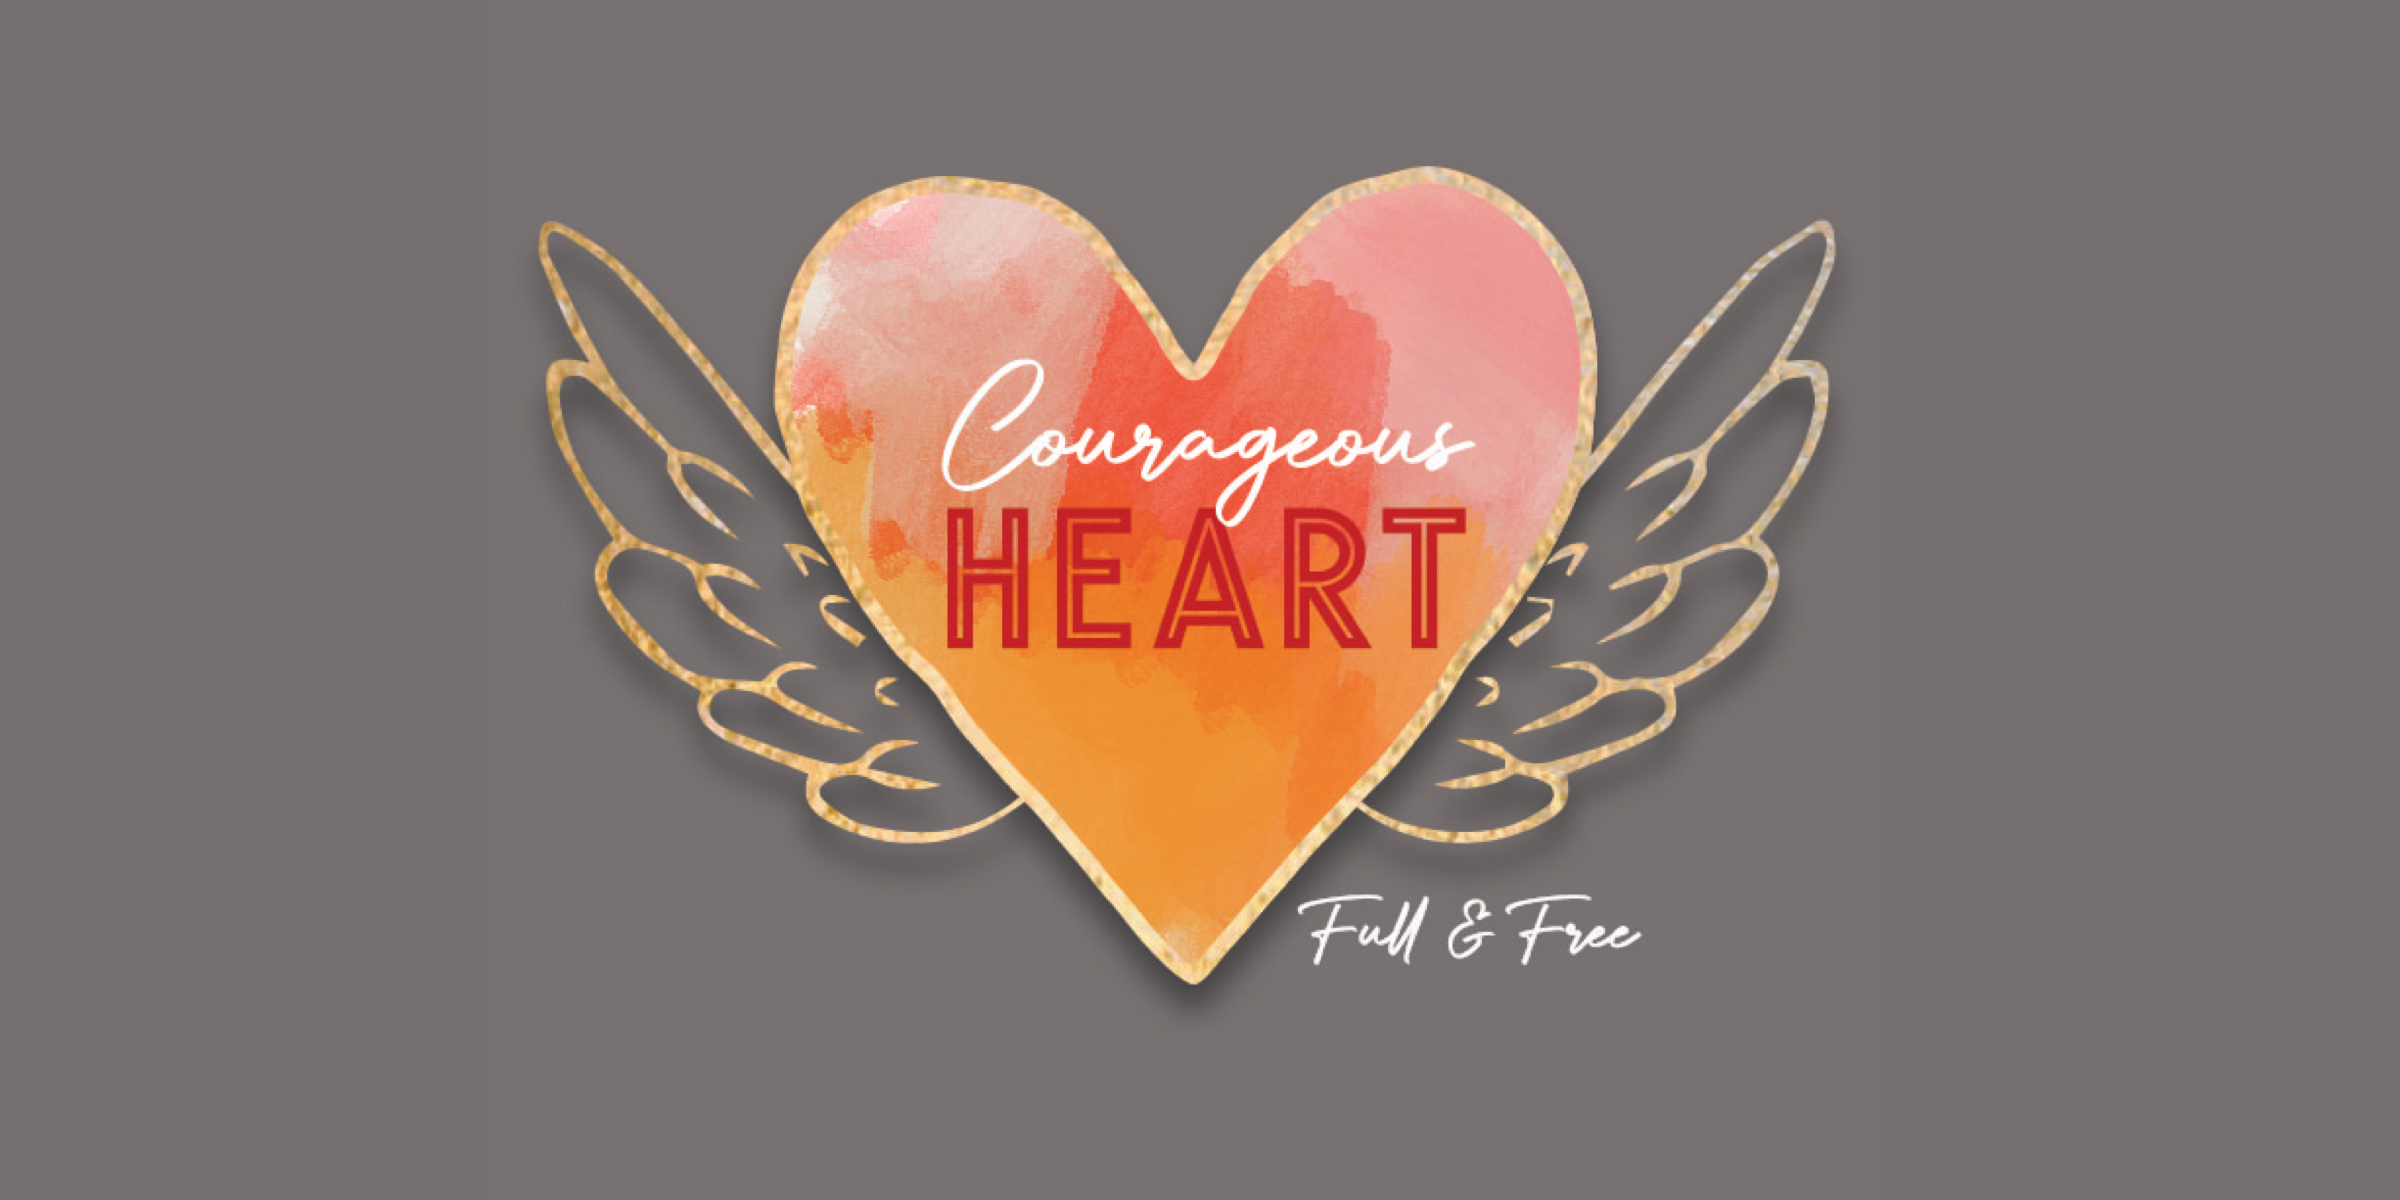 Courageous Heart: Full & Free